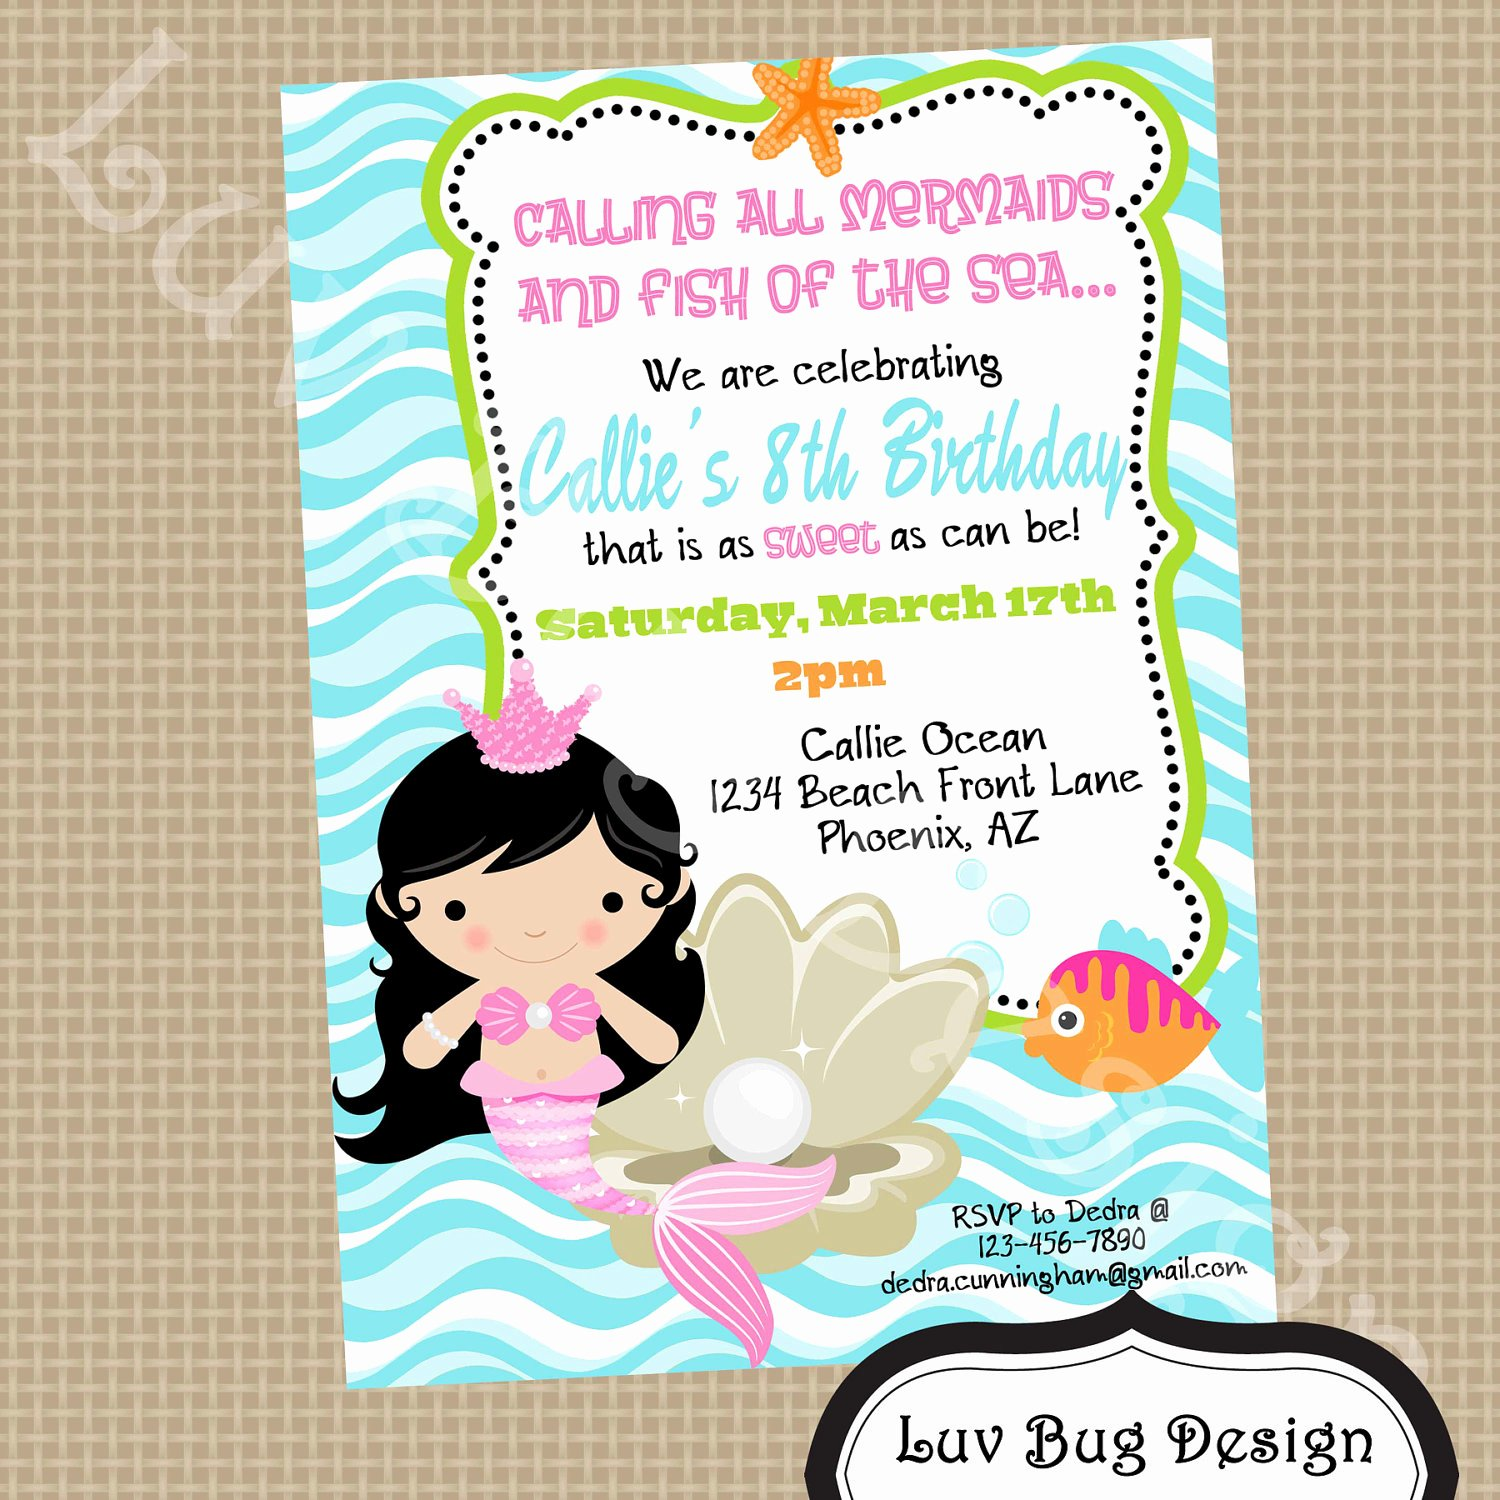 Mermaid Birthday Invitation Templates Elegant Mermaid Birthday Party Invitations – Bagvania Free